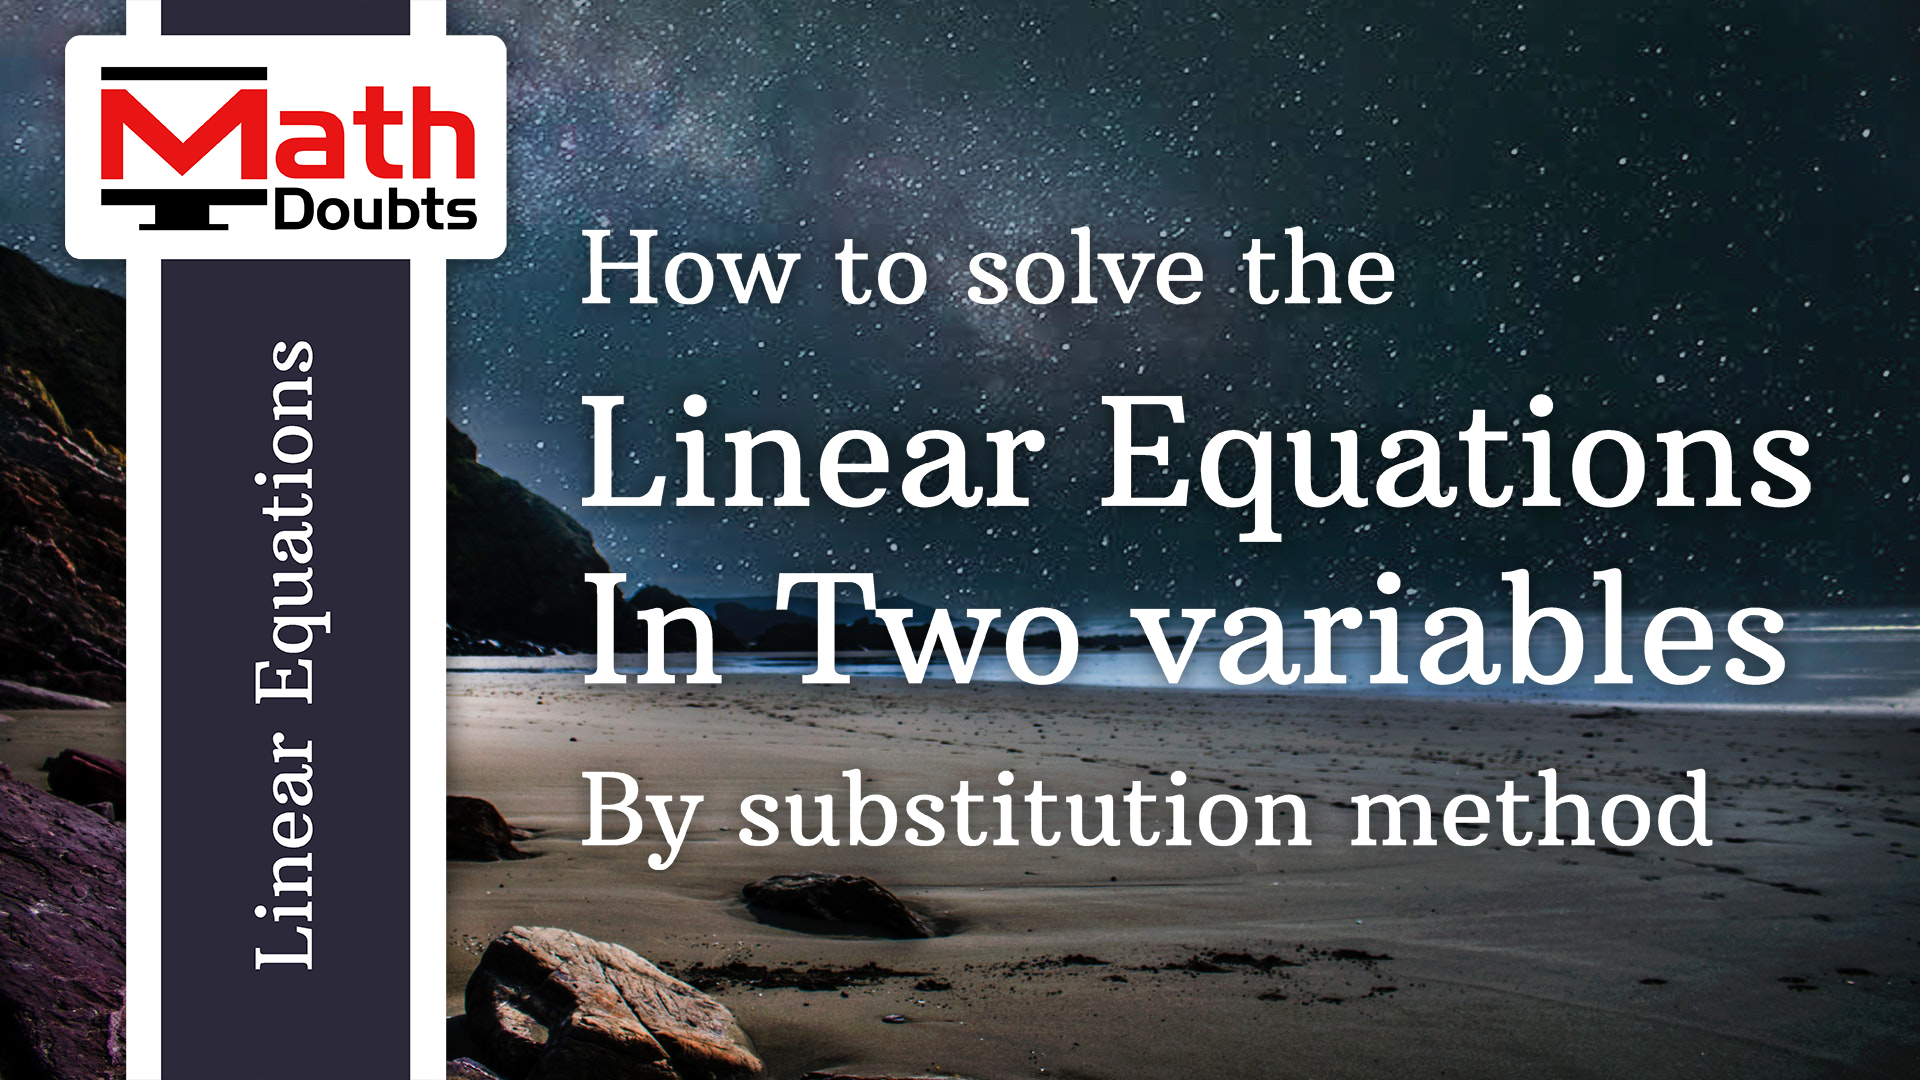 Solving Linear Equations In Two Variables By Substitution